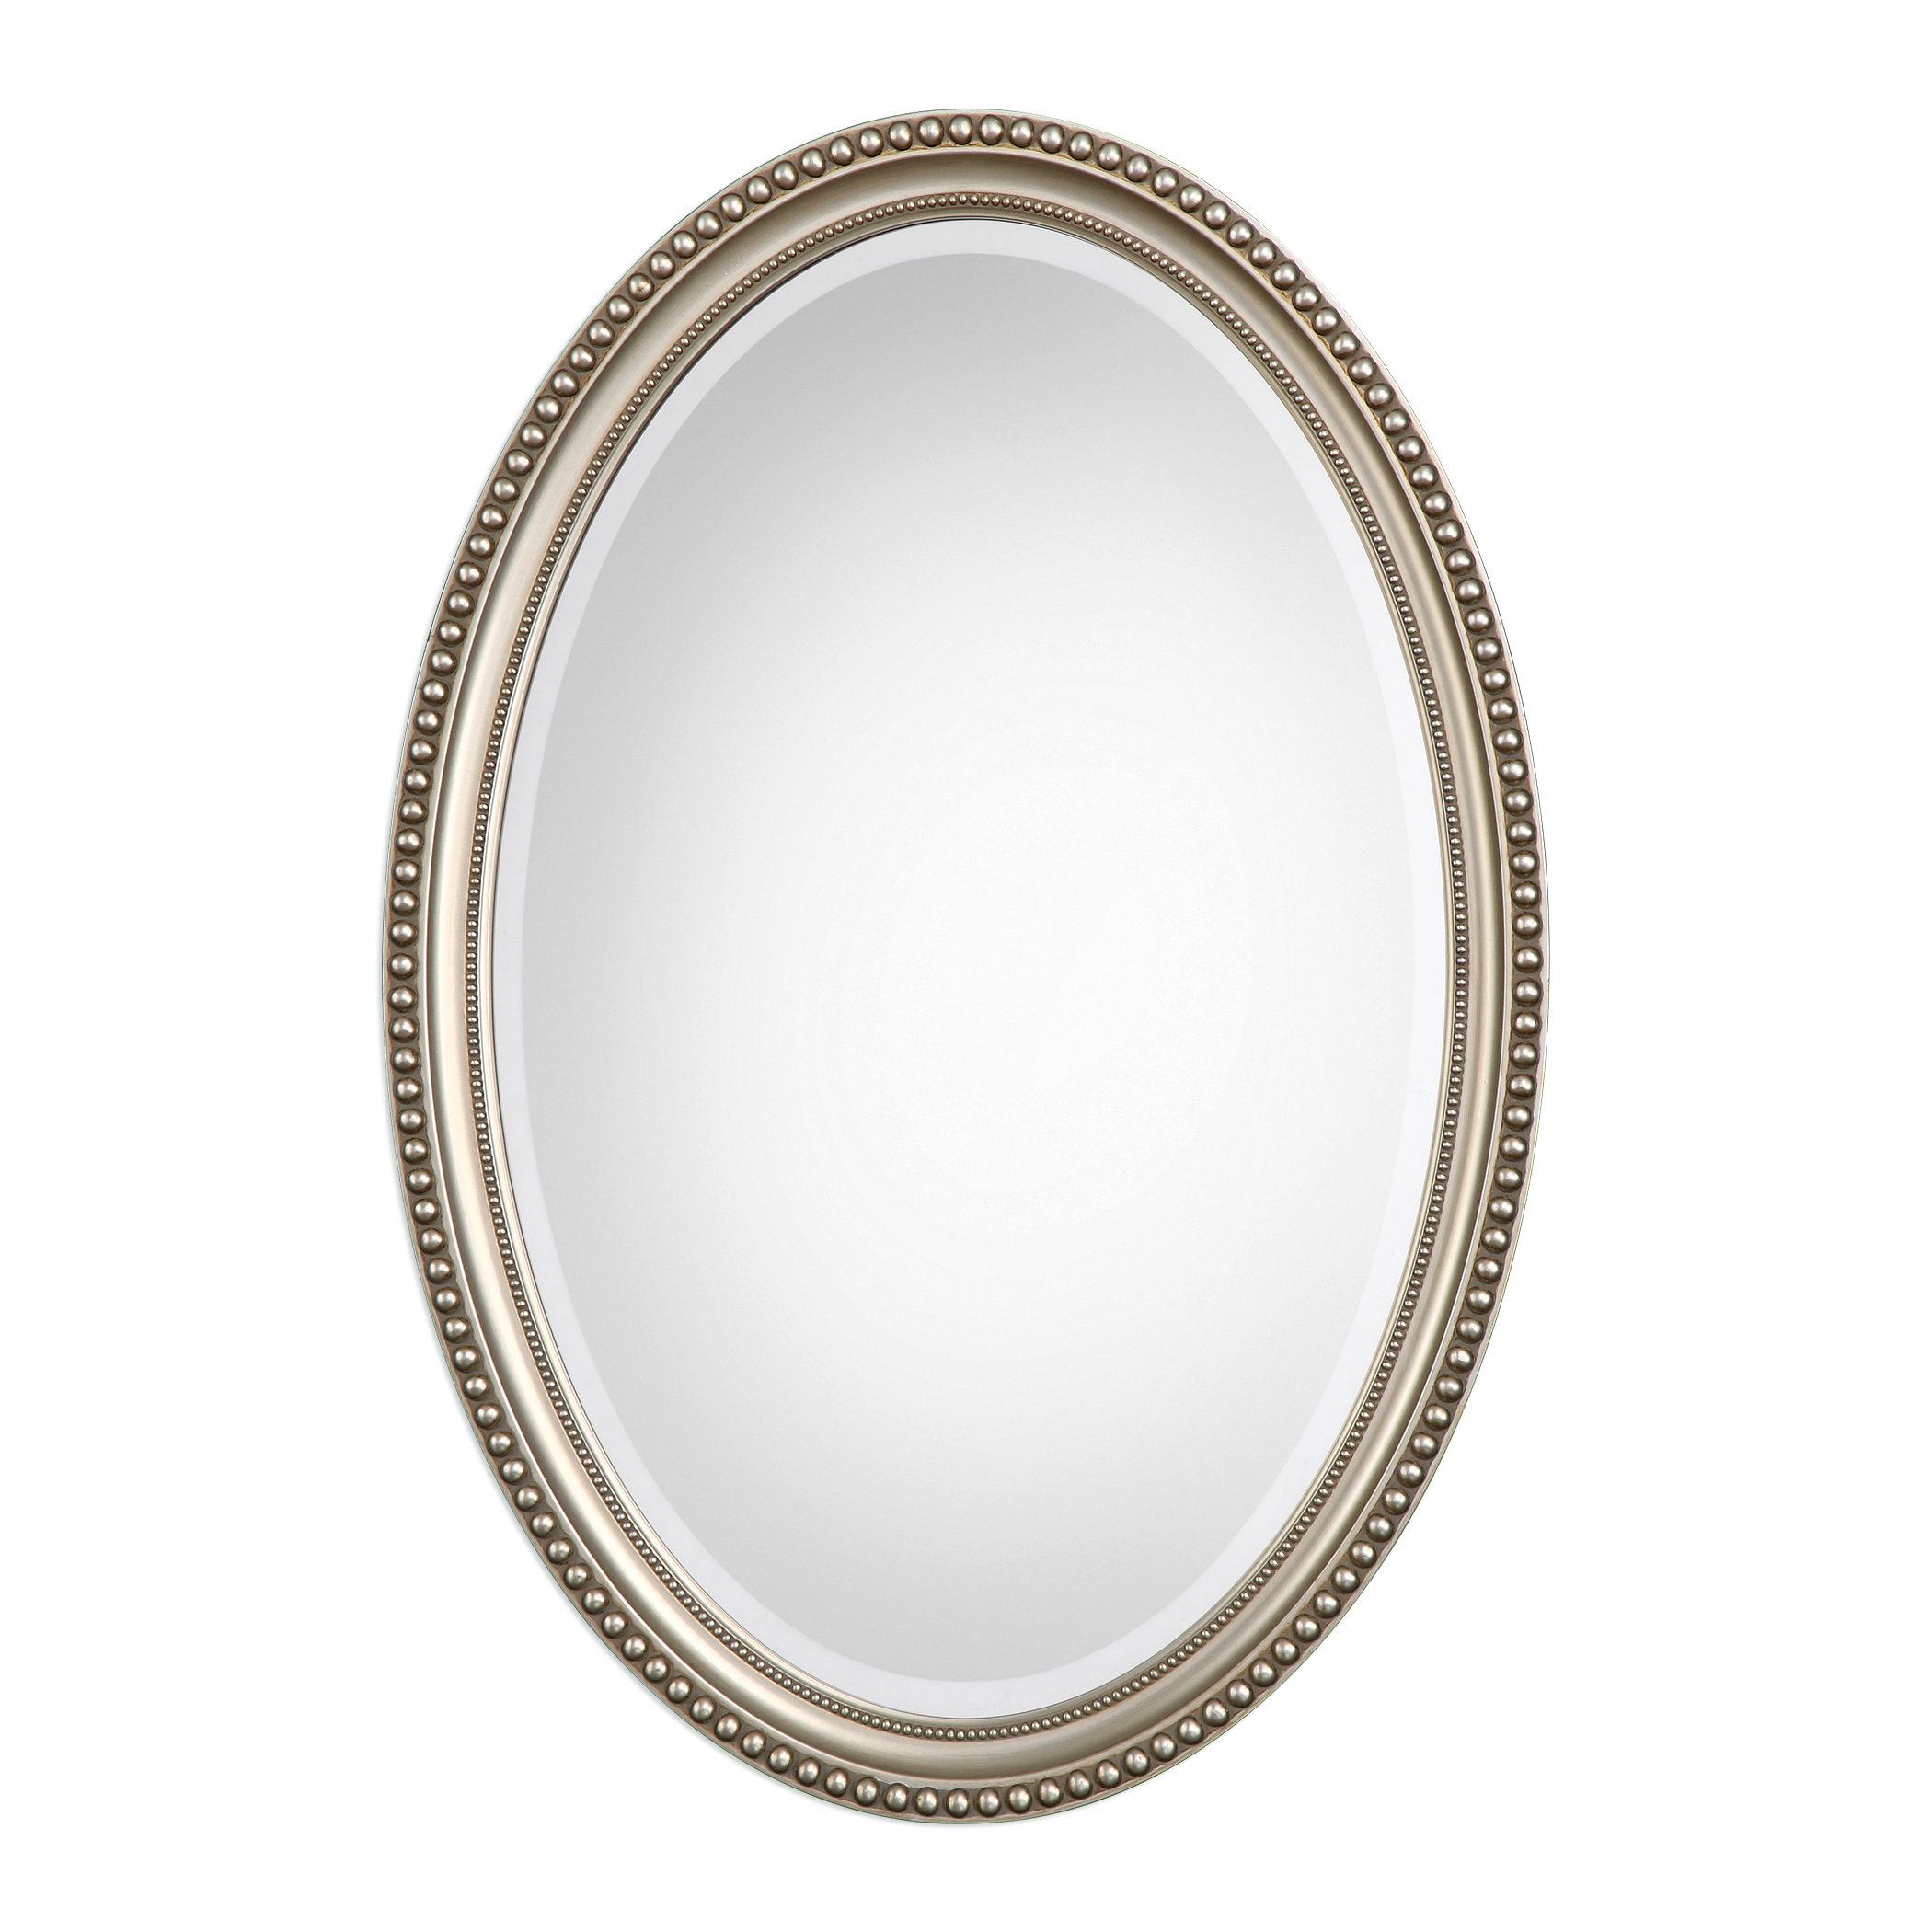 Oval Metallic Accent Mirror & Reviews | Joss & Main With Glen View Beaded Oval Traditional Accent Mirrors (View 11 of 20)